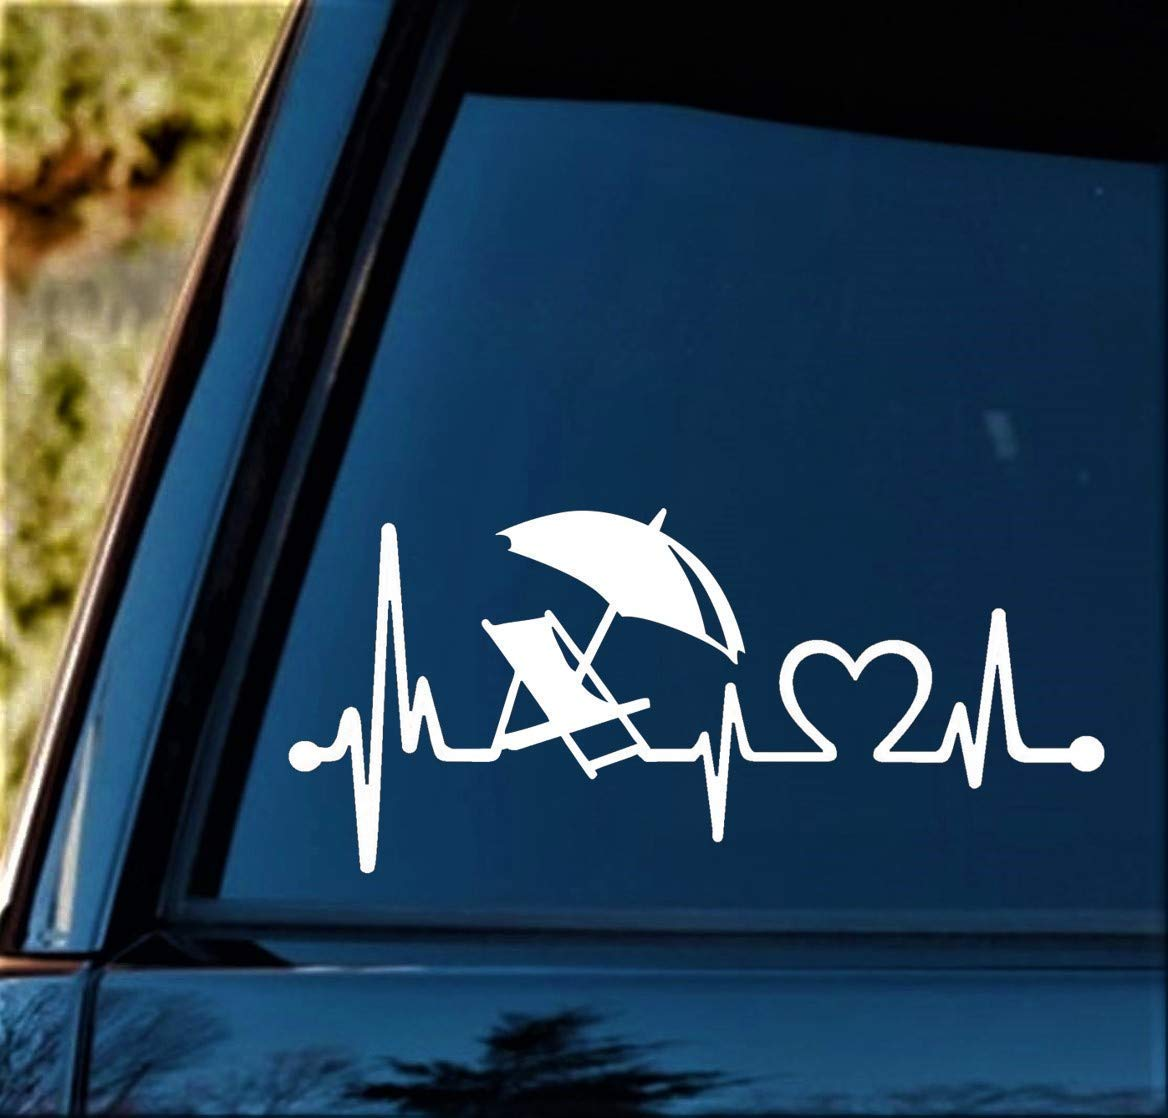 BG 369 8 Inch Beach Chair Umbrella Heartbeat Decal Sticker for Car Window